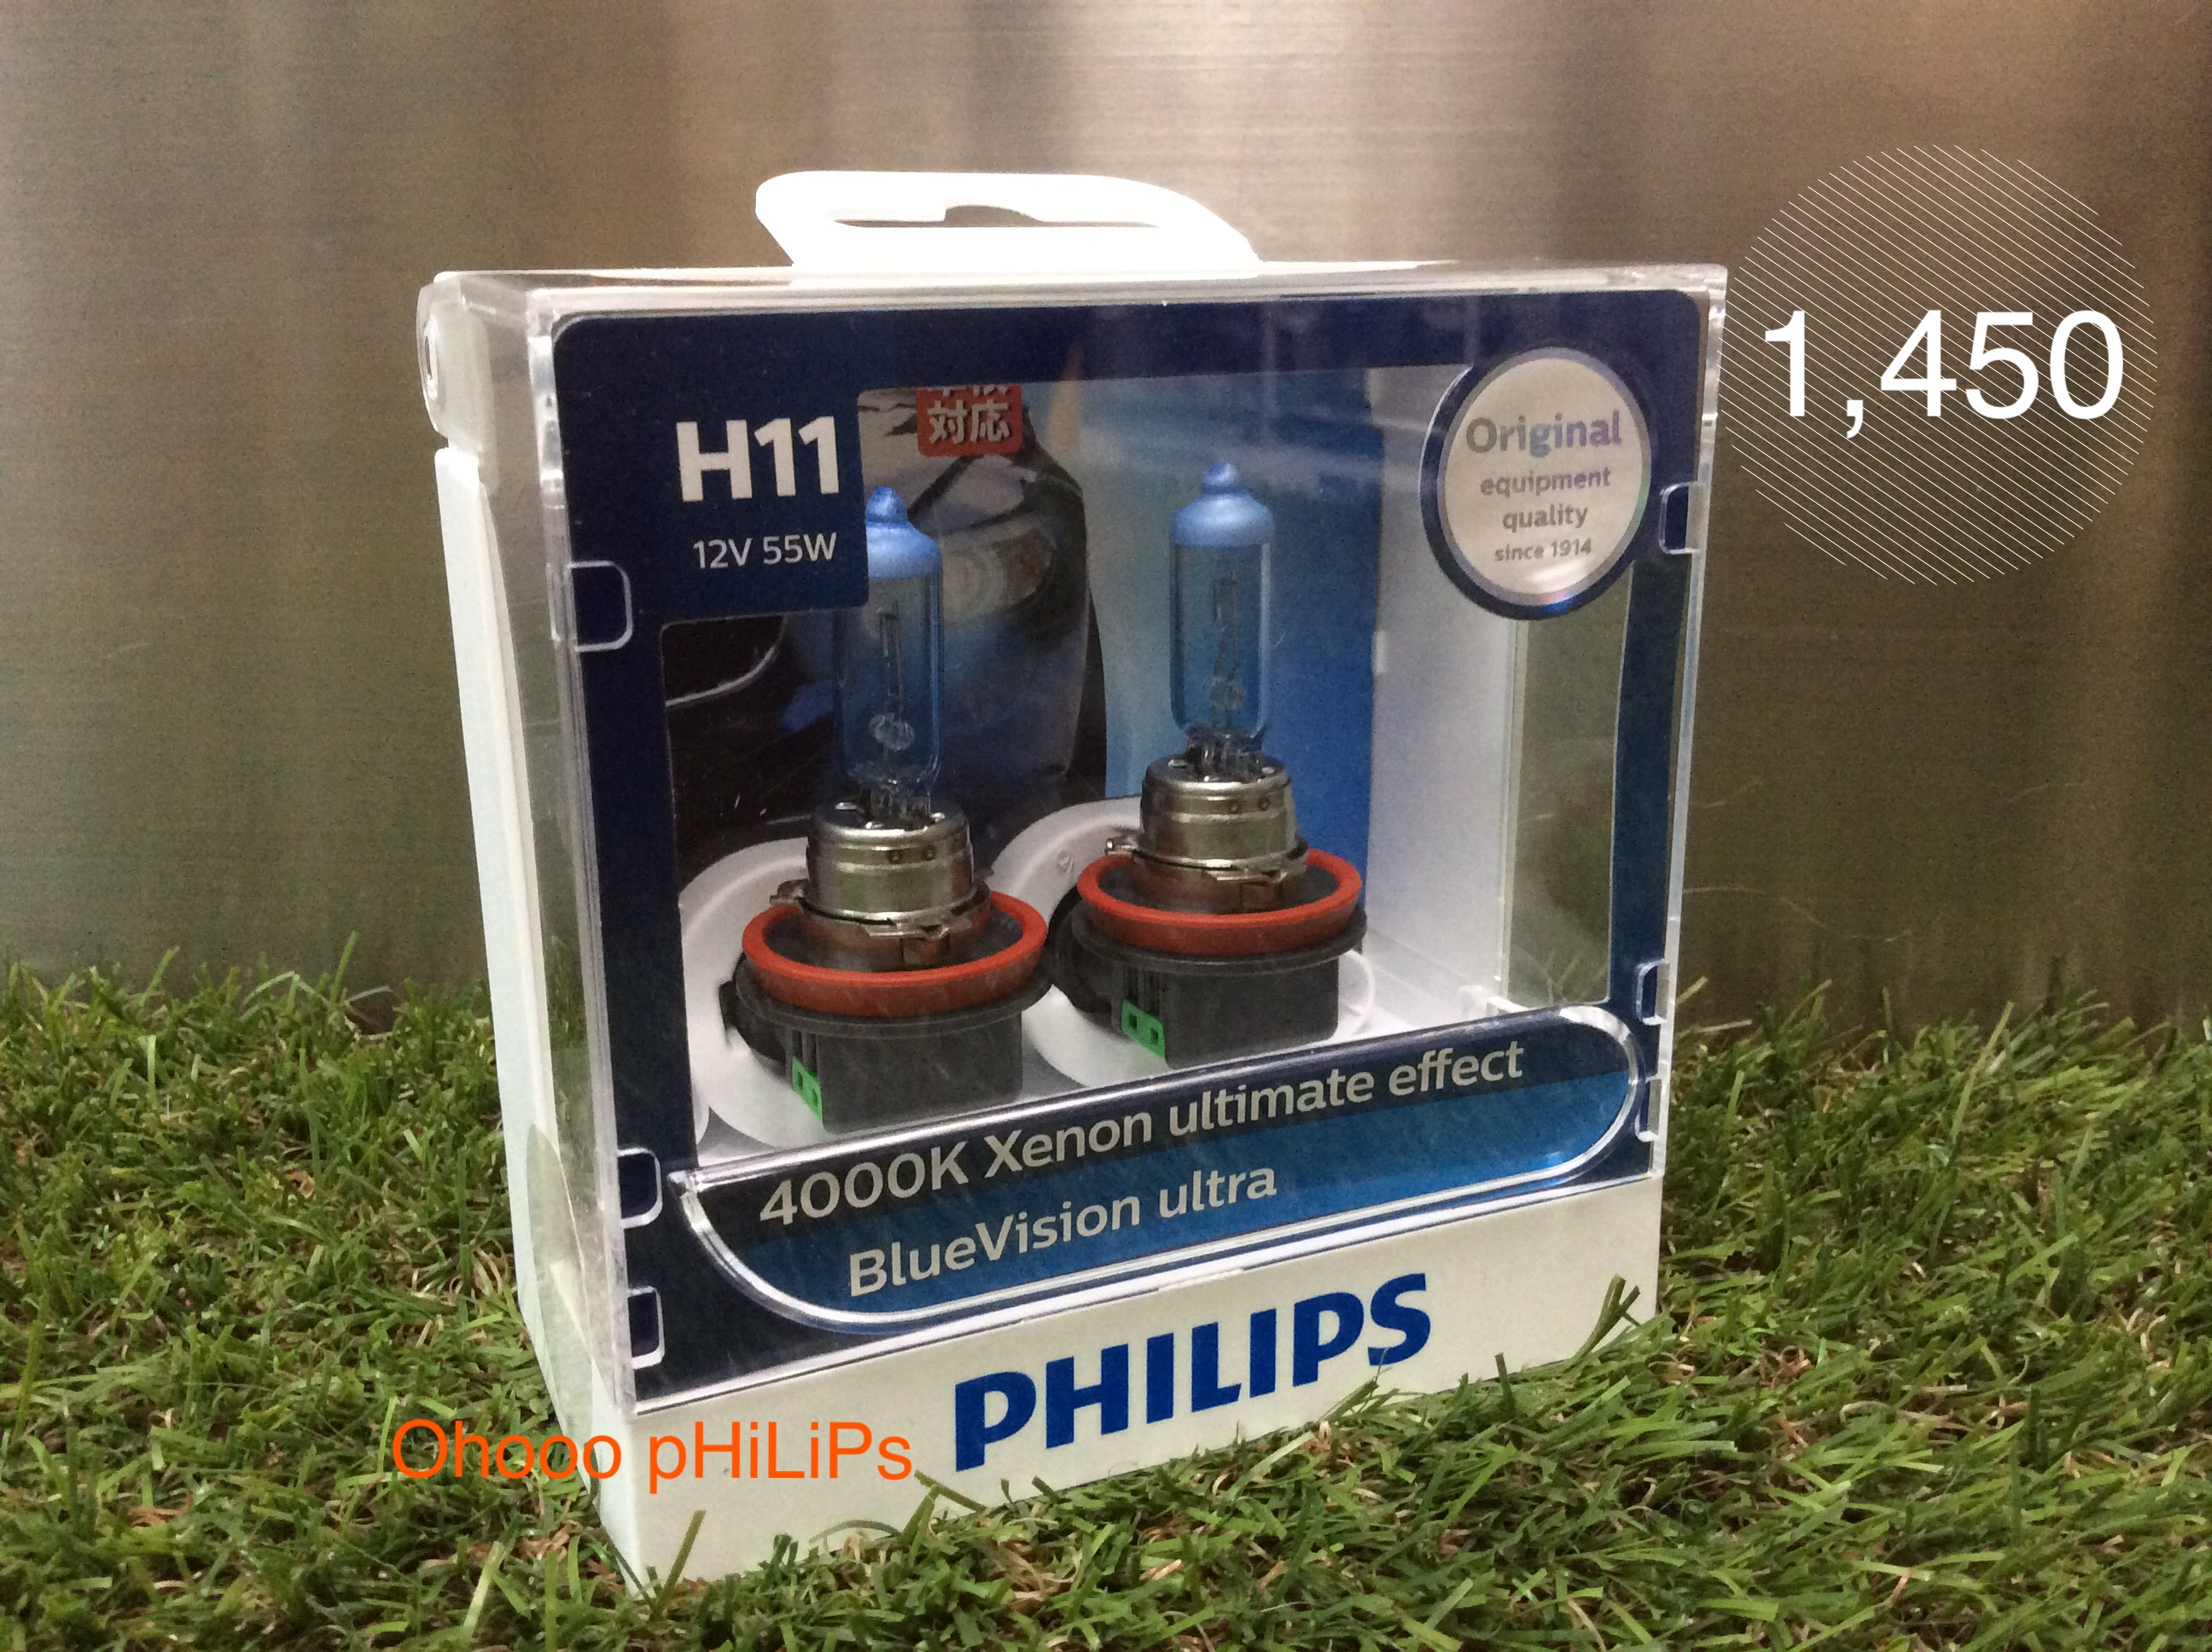 Philips Blue Vision 4000K H11